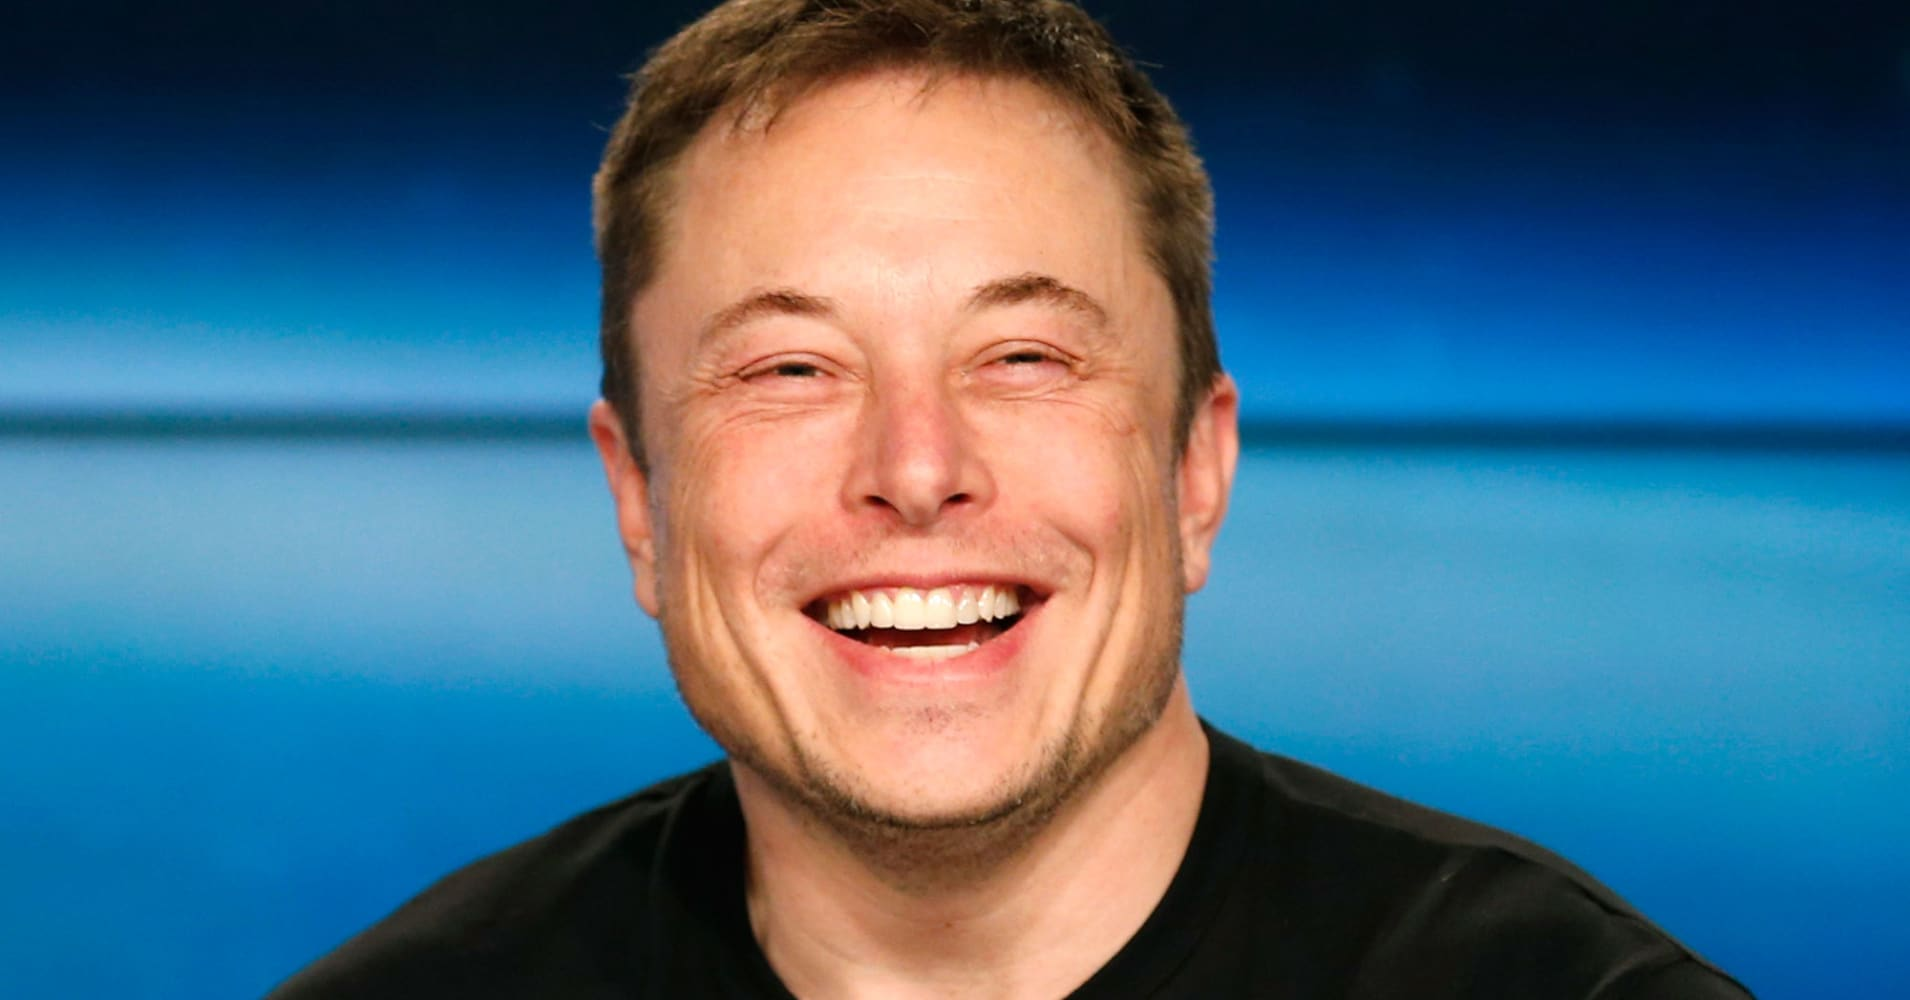 Elon Musk, founder of SpaceX and Tesla.